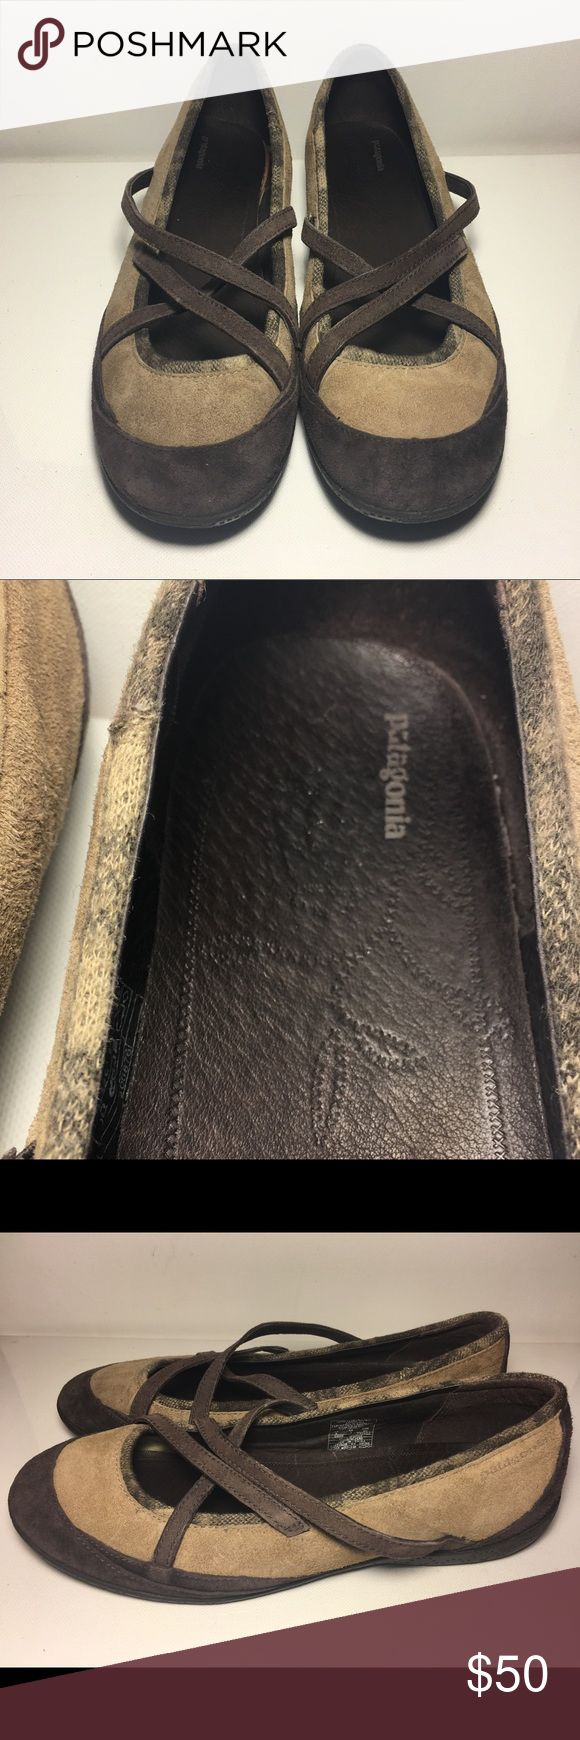 PATAGONIA Dove Silvery Peony Ballet Flats PATAGONIA Dove Silvery Peony Ballet Flats   Brown Suede Cross Strap Ballet Flats  Style Name: Dove Silvery Peony Size: 9 Suede Leather with Fabric Trim Brown and Light Brown 😁EUC 😁 Patagonia Shoes Sneakers